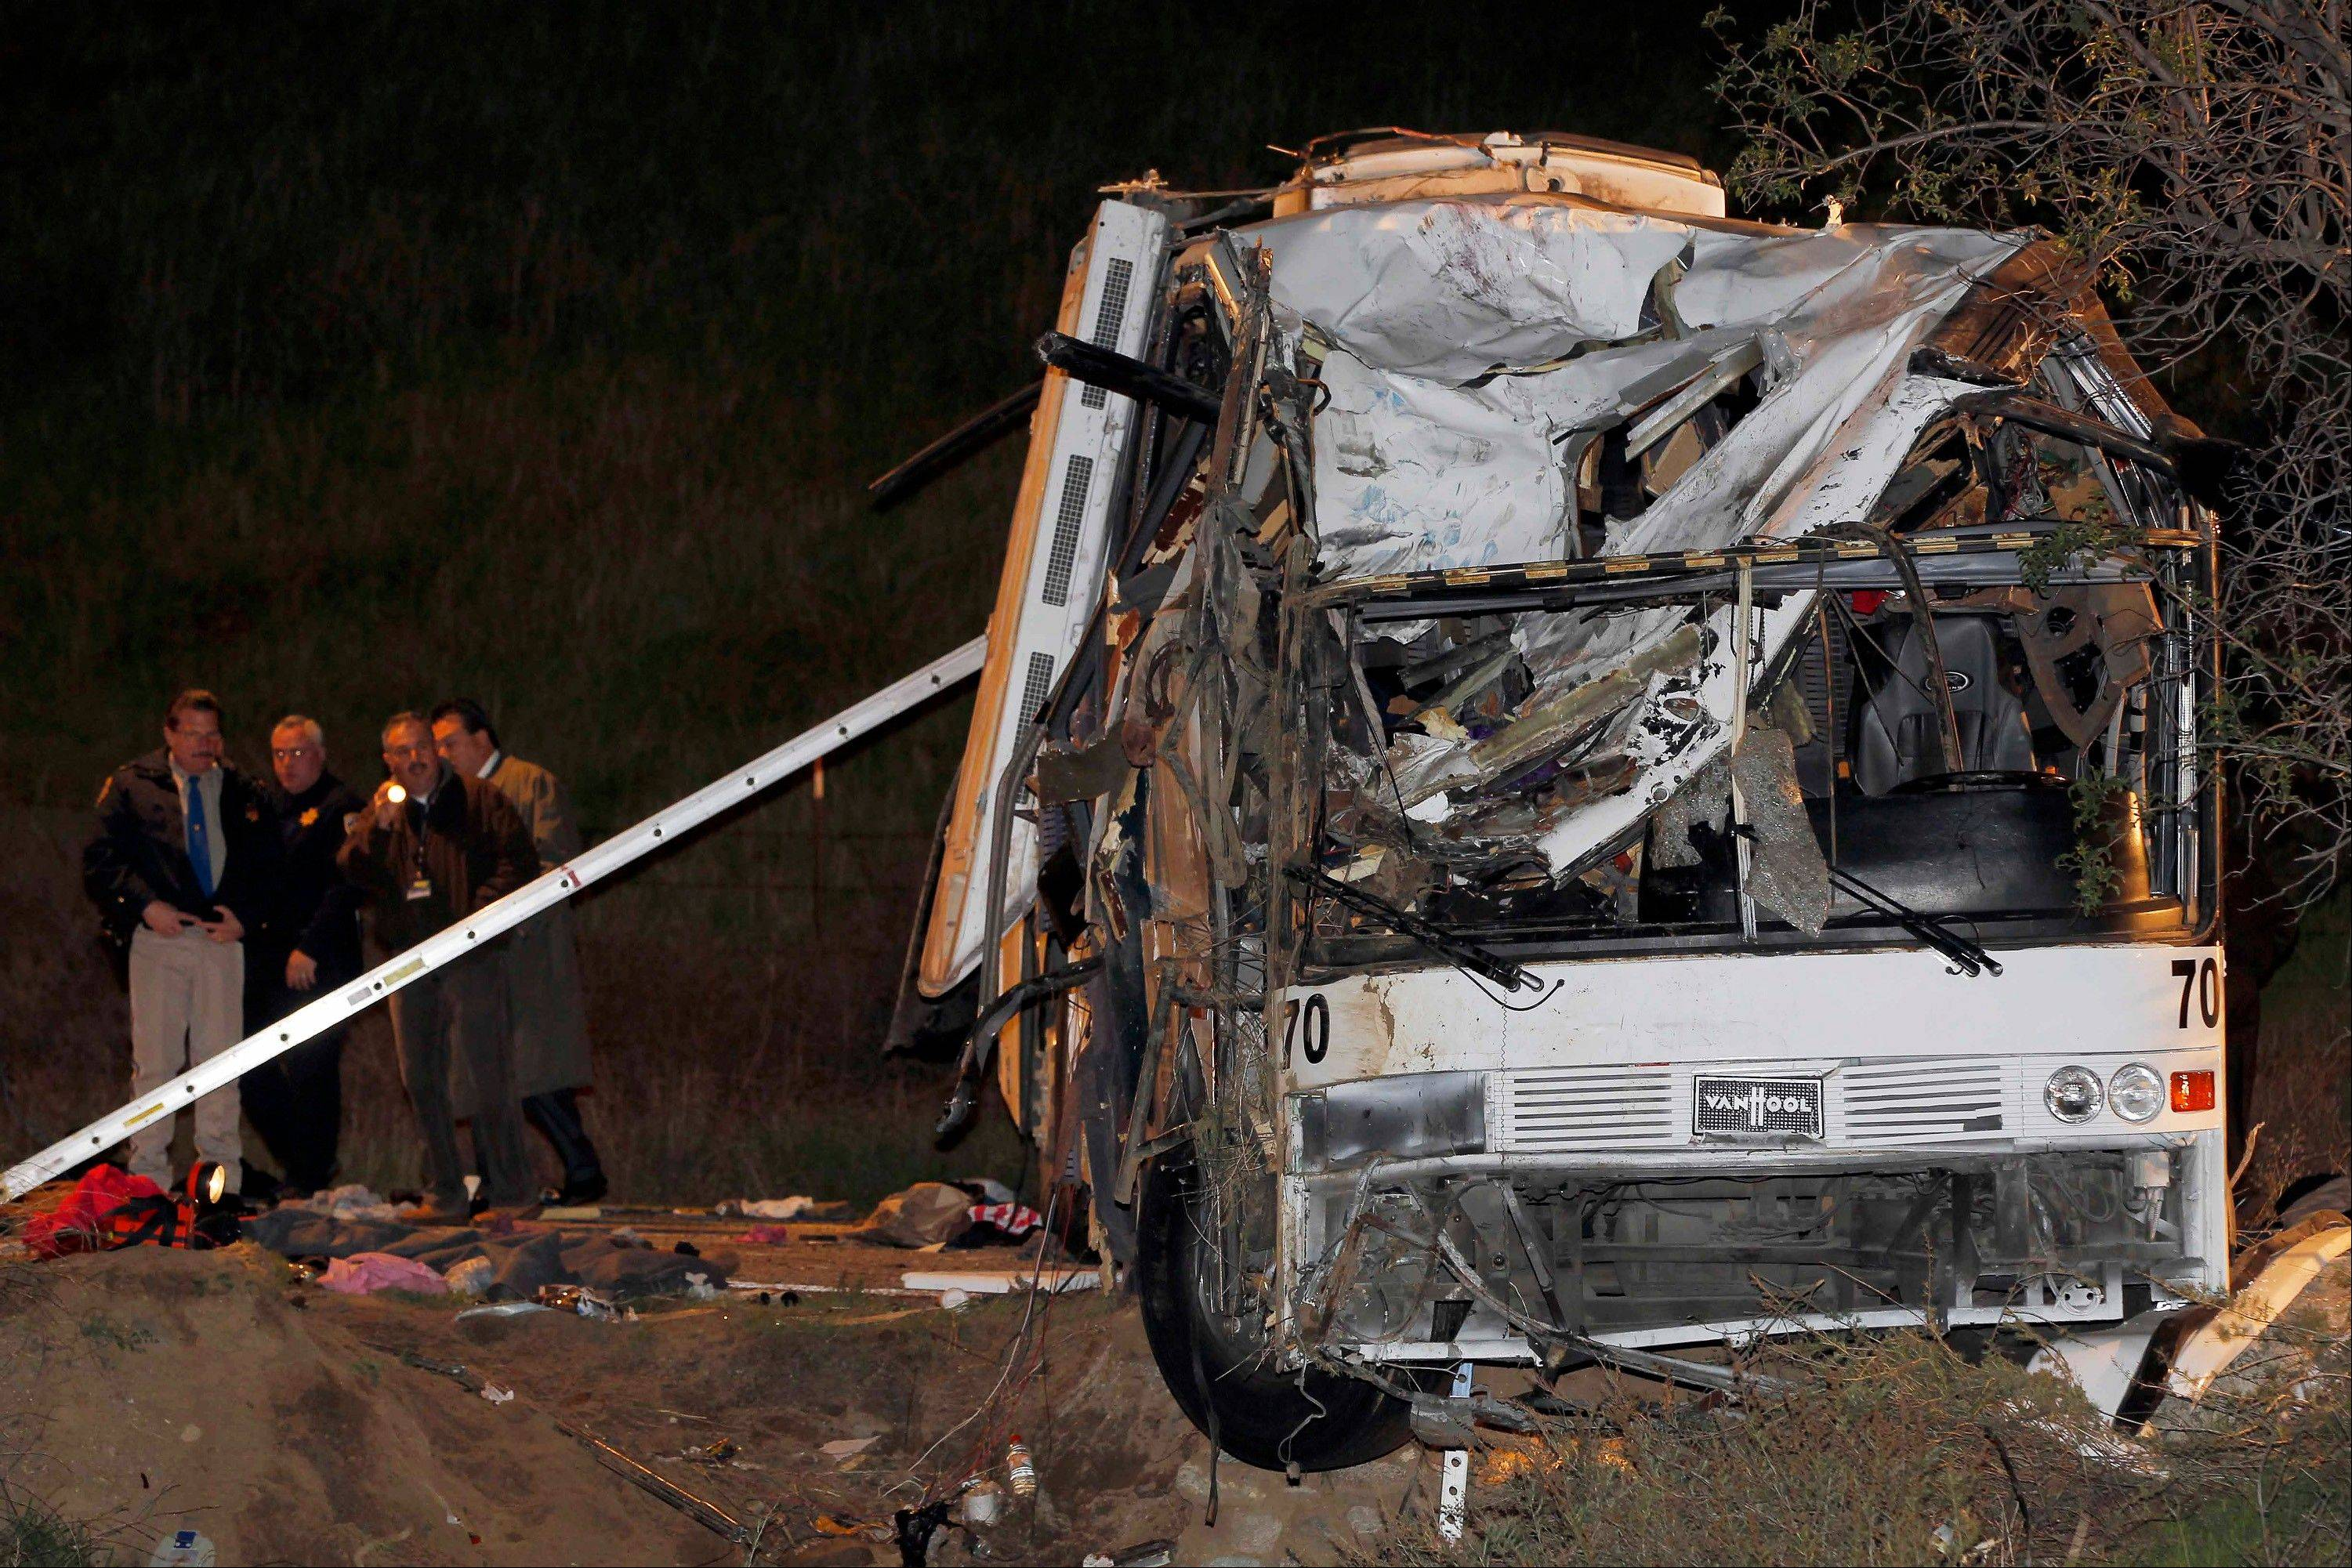 Investigators continue working the scene where at least eight people were killed and 38 people were injured after a tour bus carrying Mexican tourists careened out of control while traveling down a mountain road, struck a car, flipped and plowed into a pickup truck, near Yucaipa, Calif., Sunday.